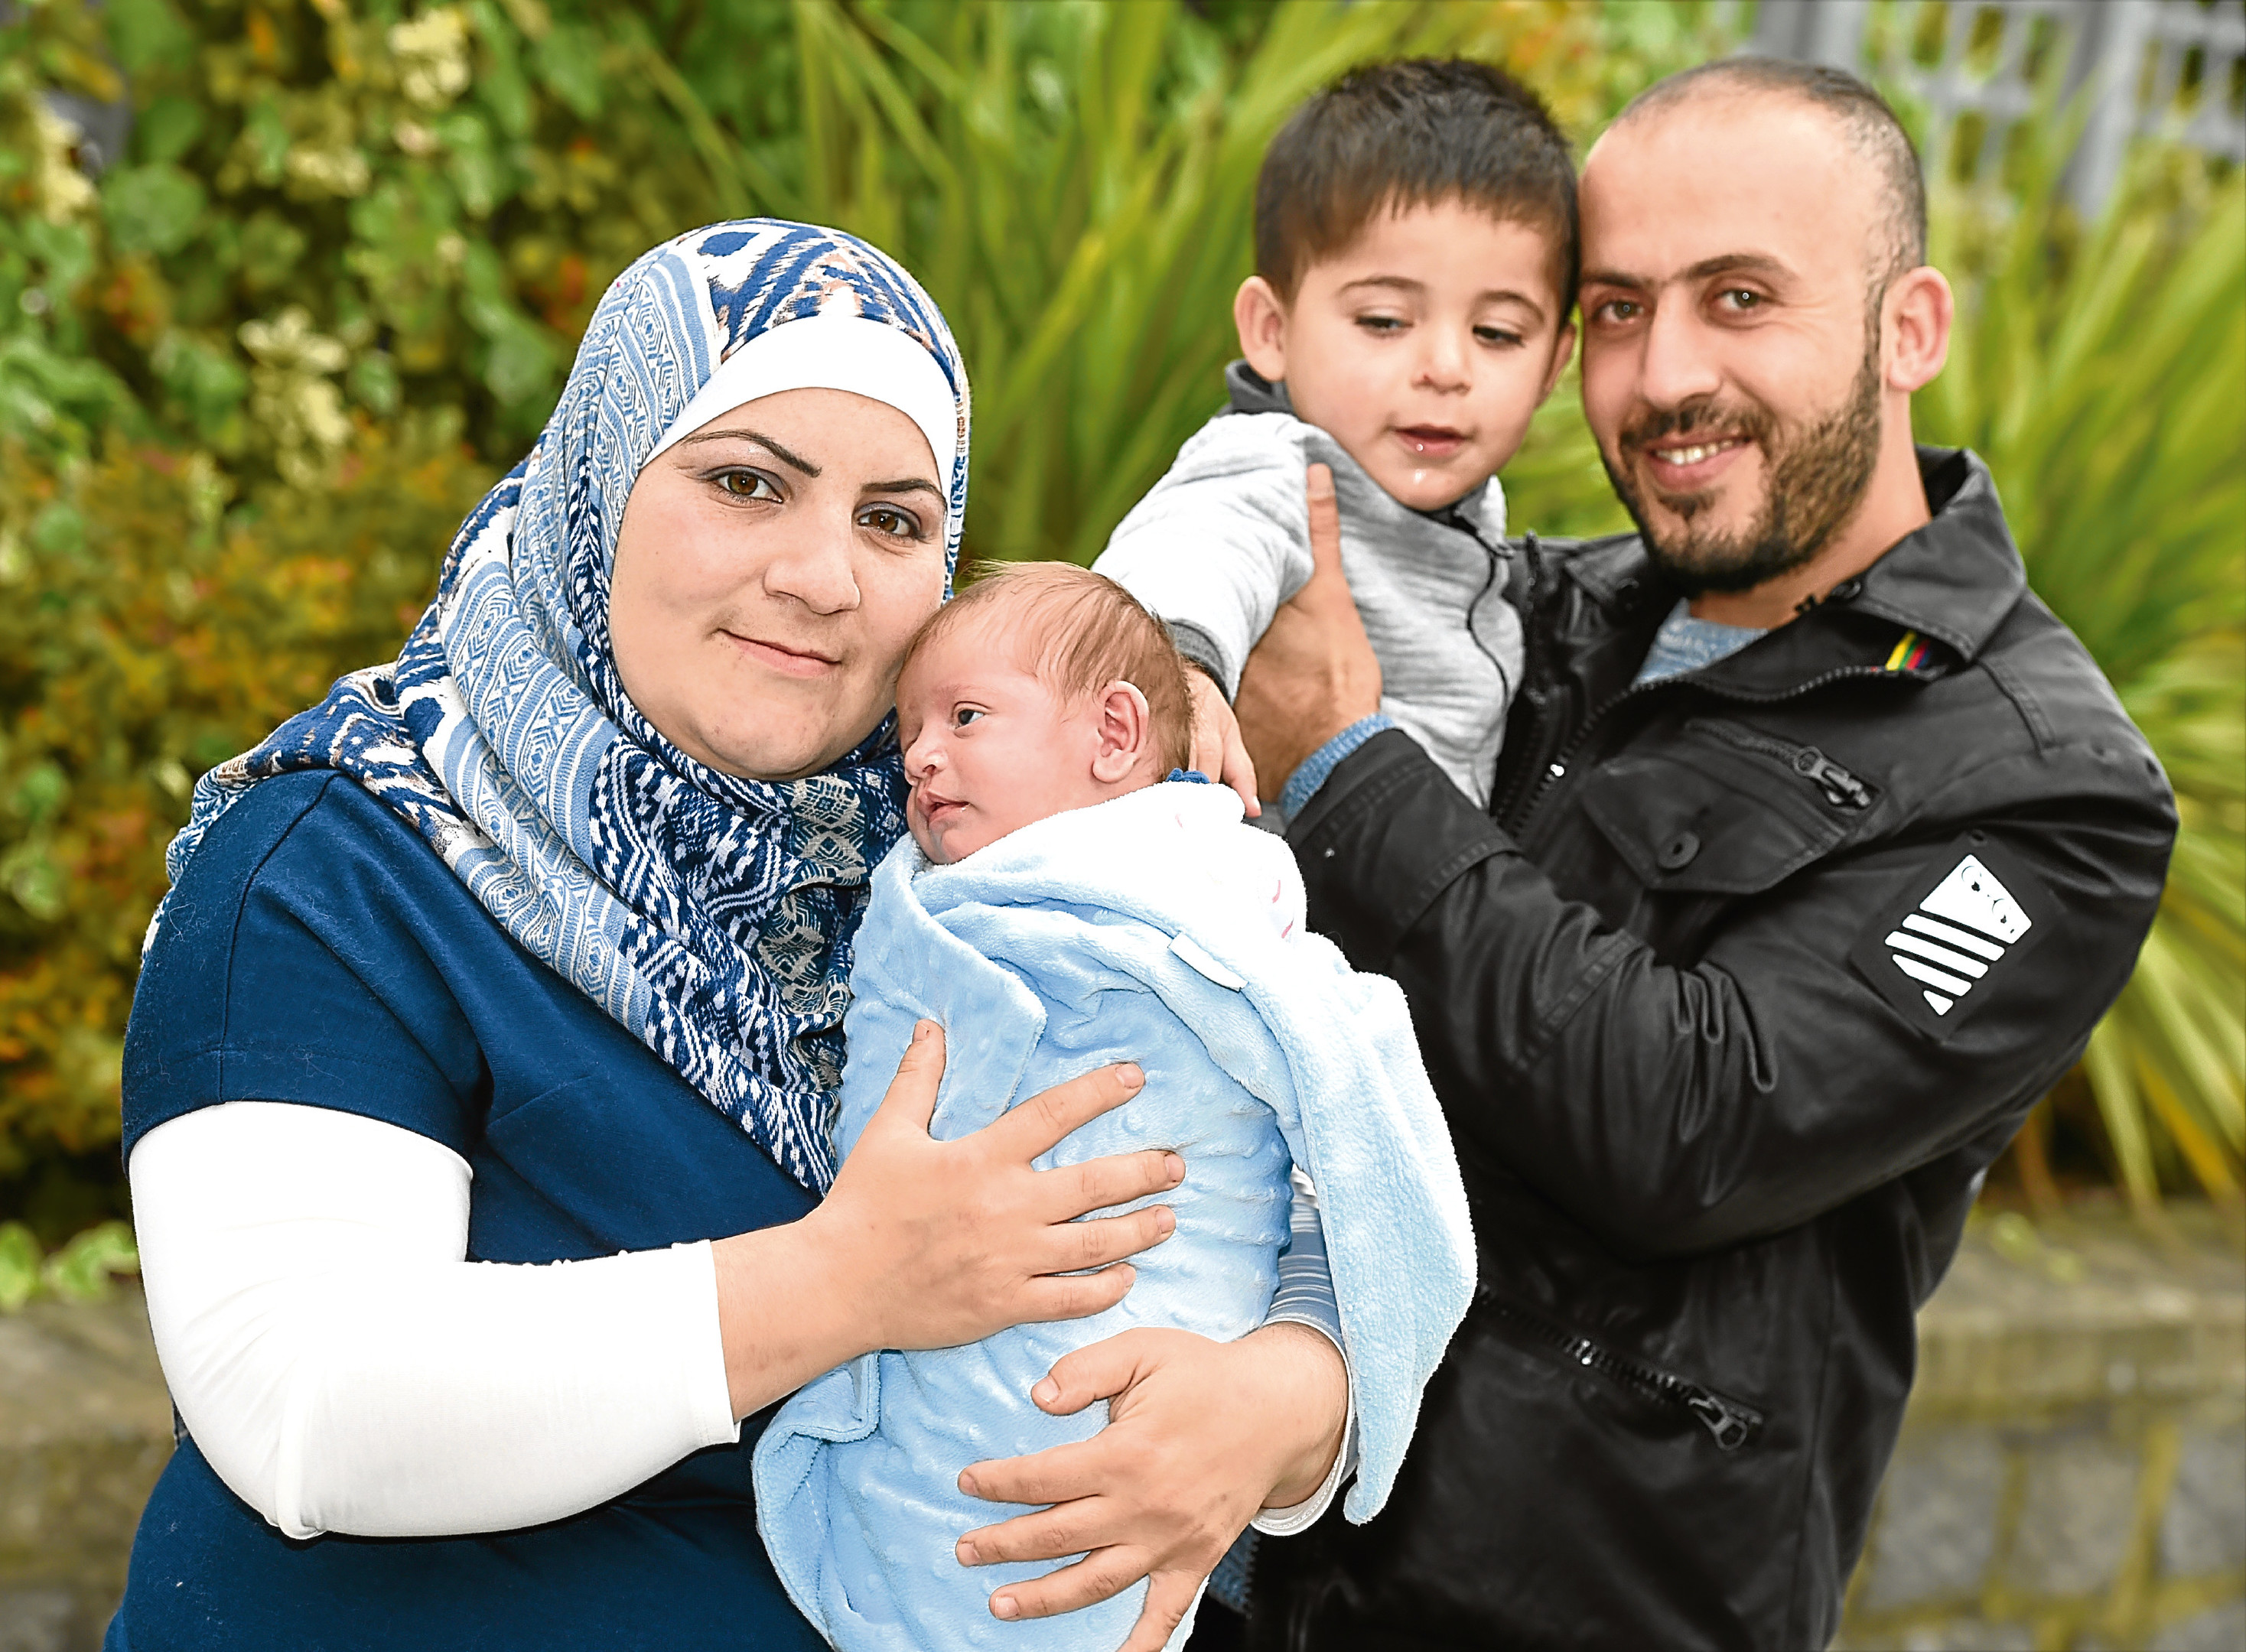 Baby Ibrahim Al Hussein, pictured with dad Khalid Al Hussein, mother Fadila and brother Shadea, was born in Aberdeen last year.